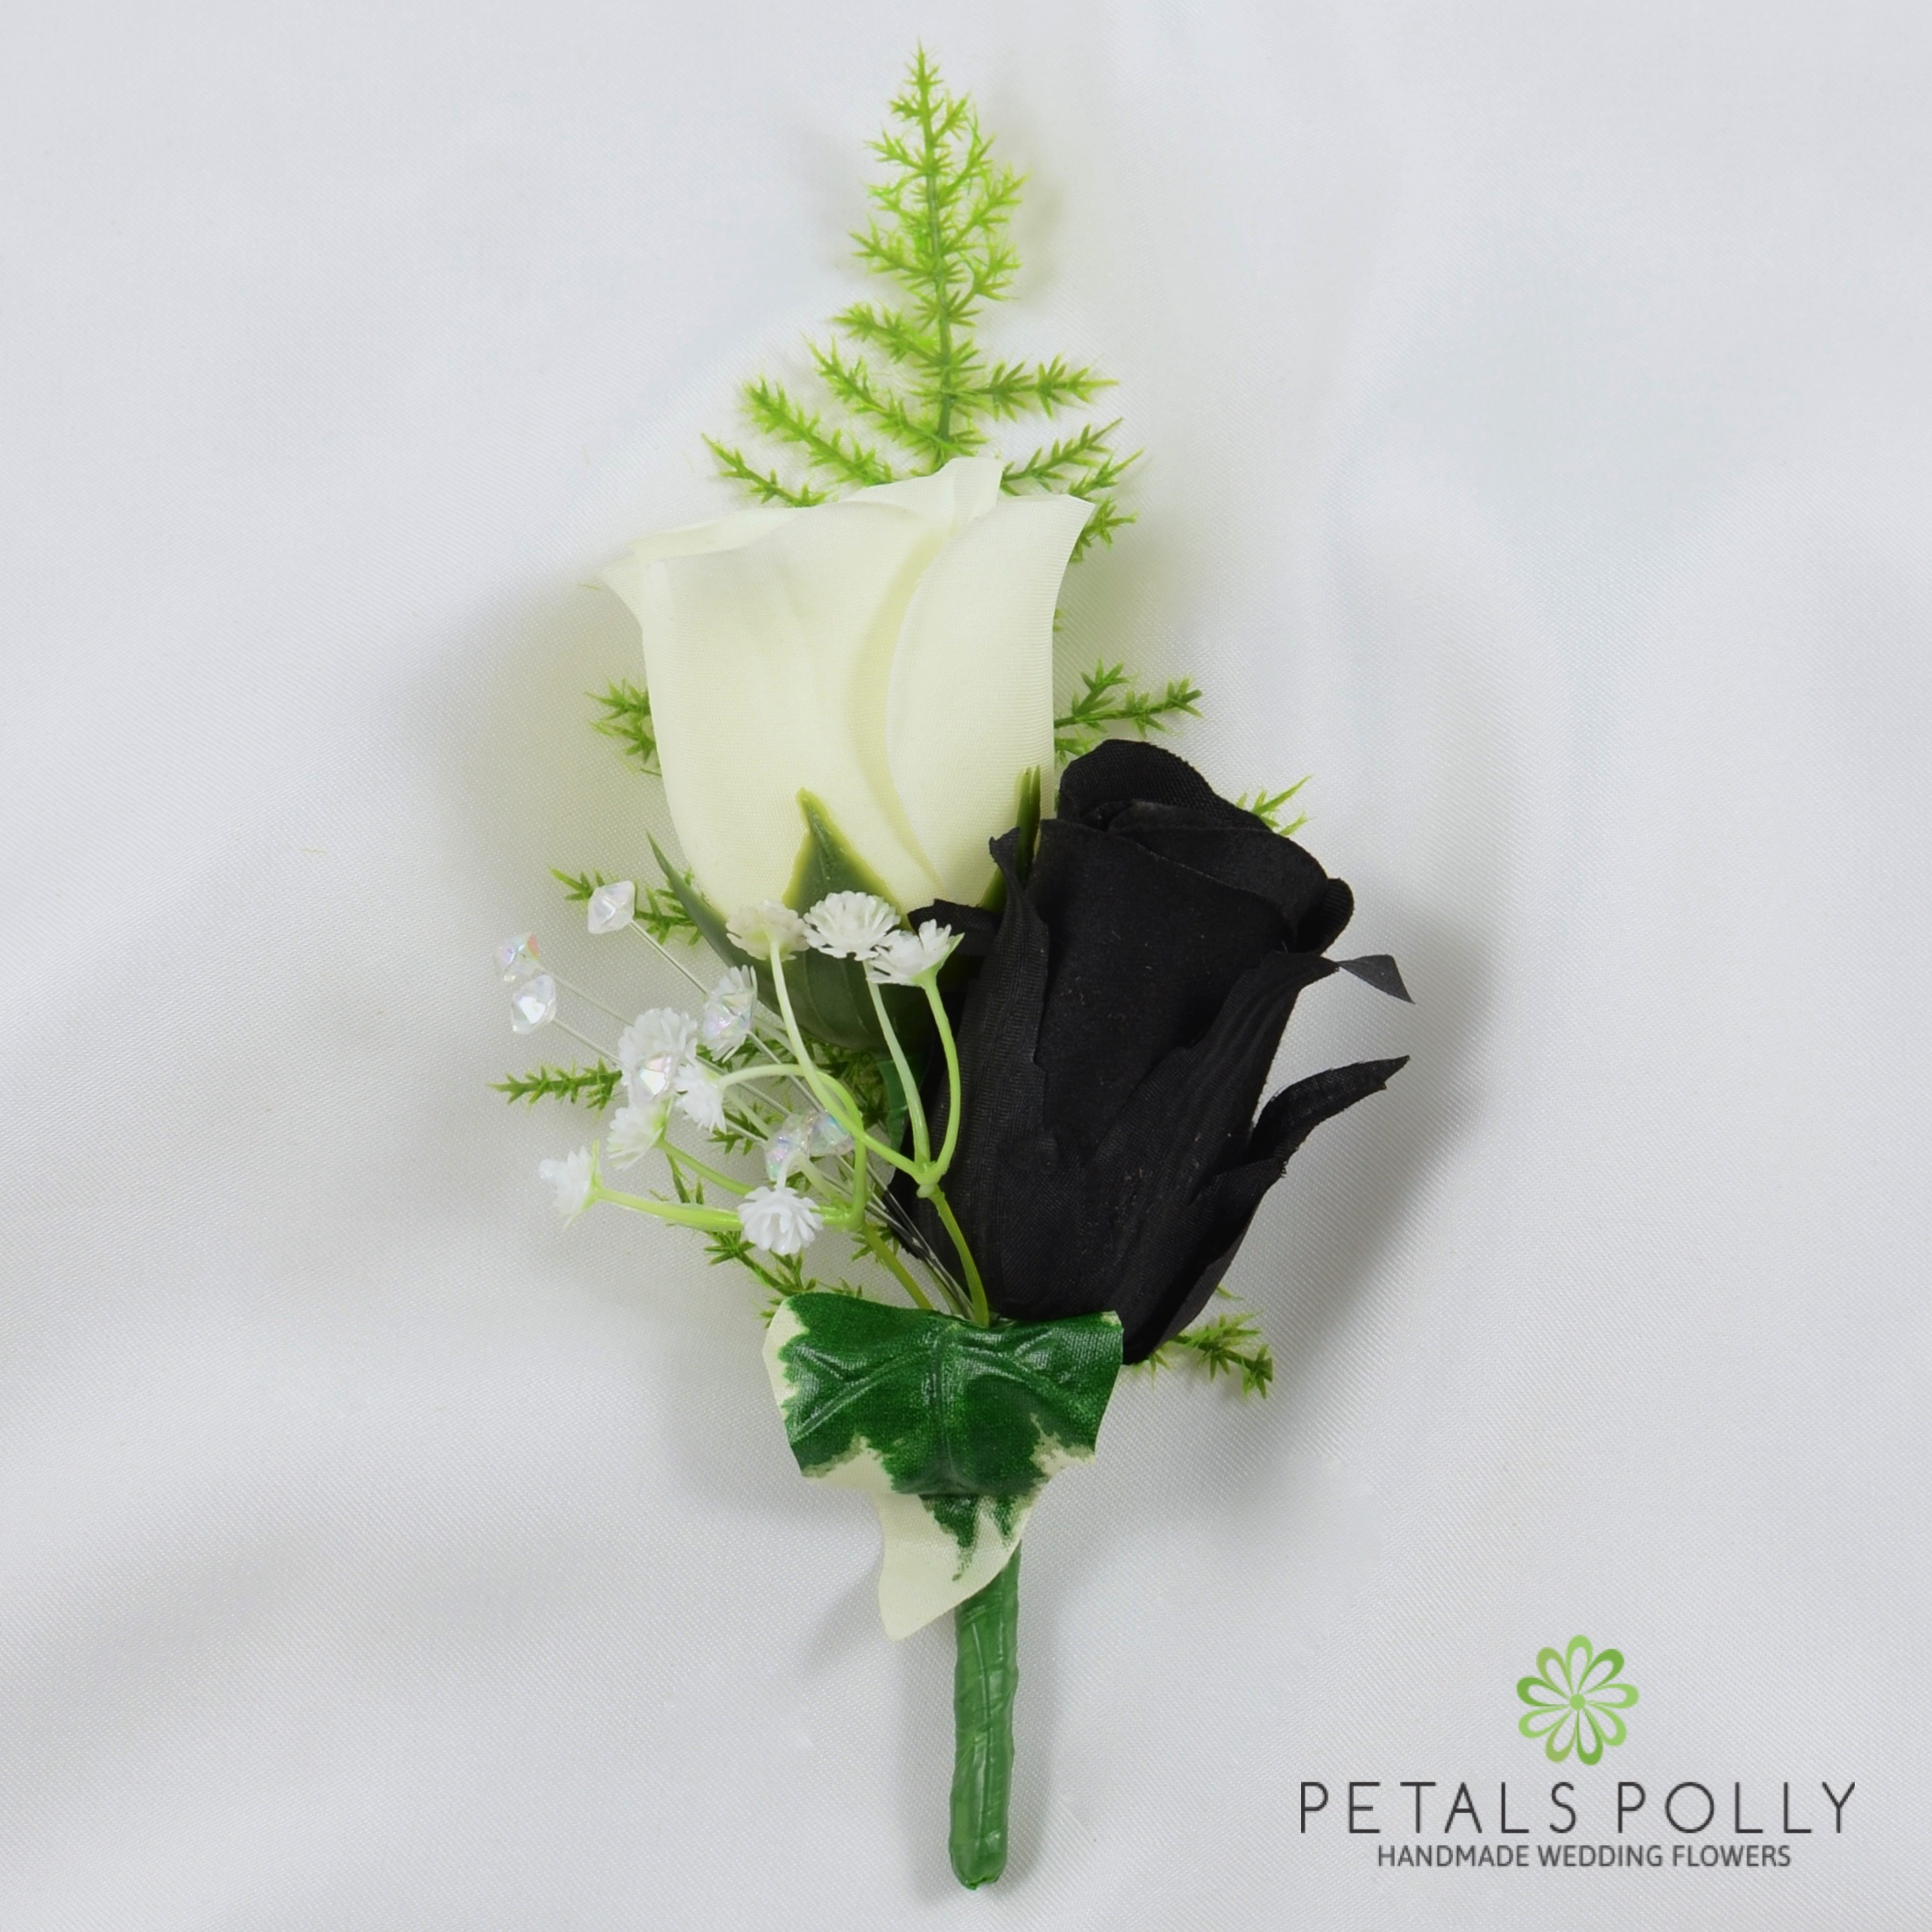 Artificial wedding flowers hand made by petals polly silk rose artificial wedding flowers hand made by petals polly silk rose buttonhole in baby blue with crystal mightylinksfo